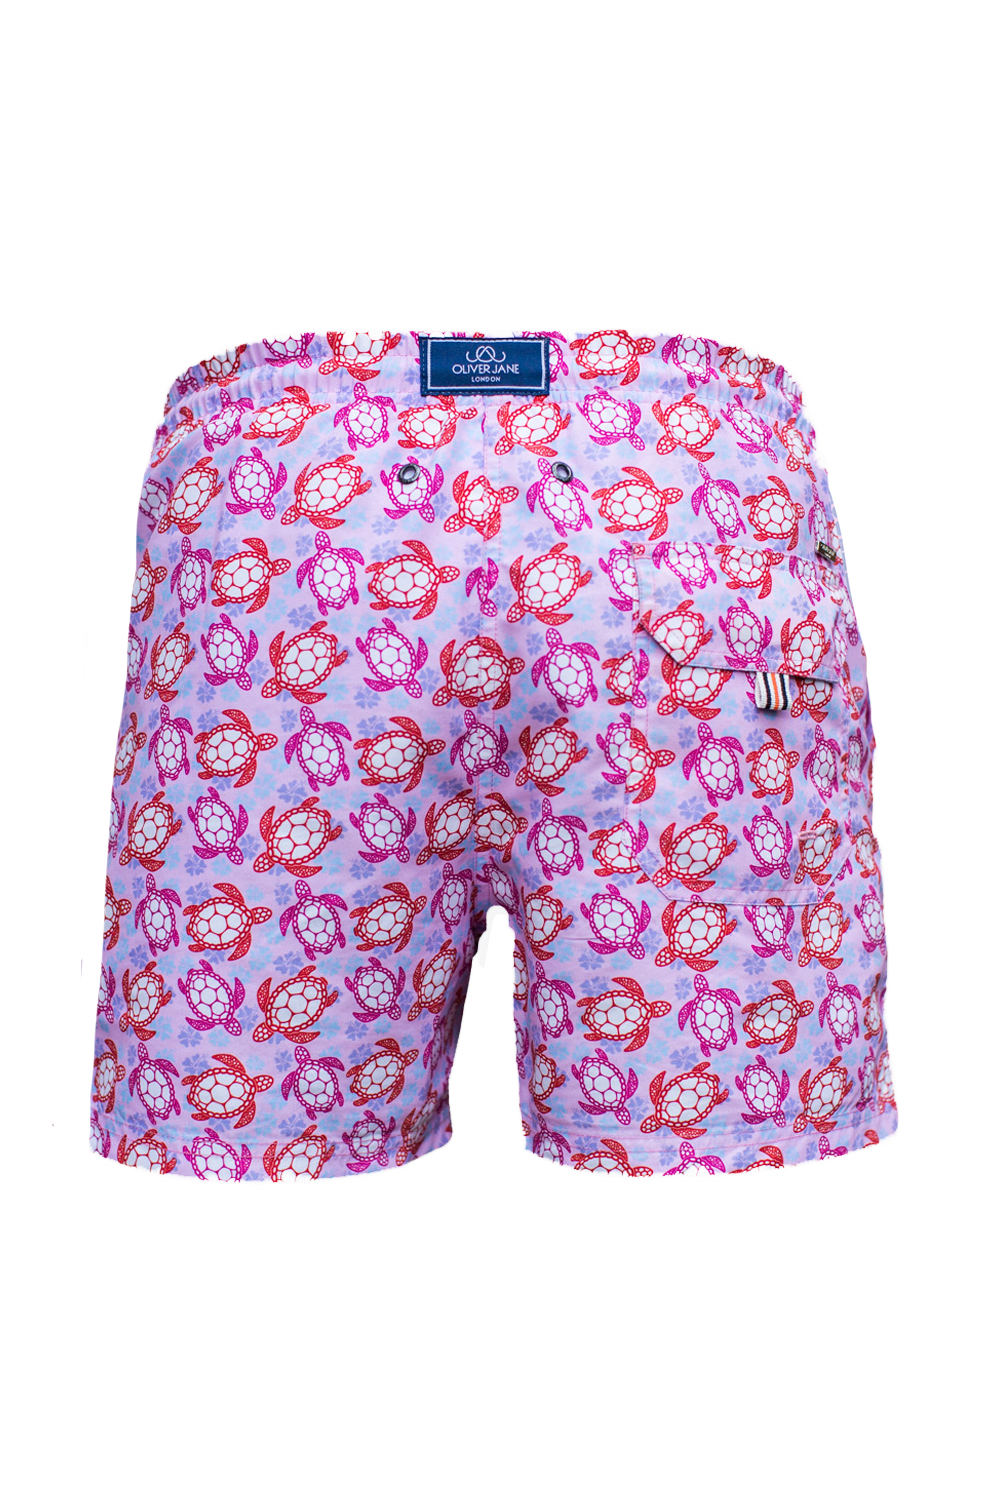 The Beach Turtle Pink Swim Short